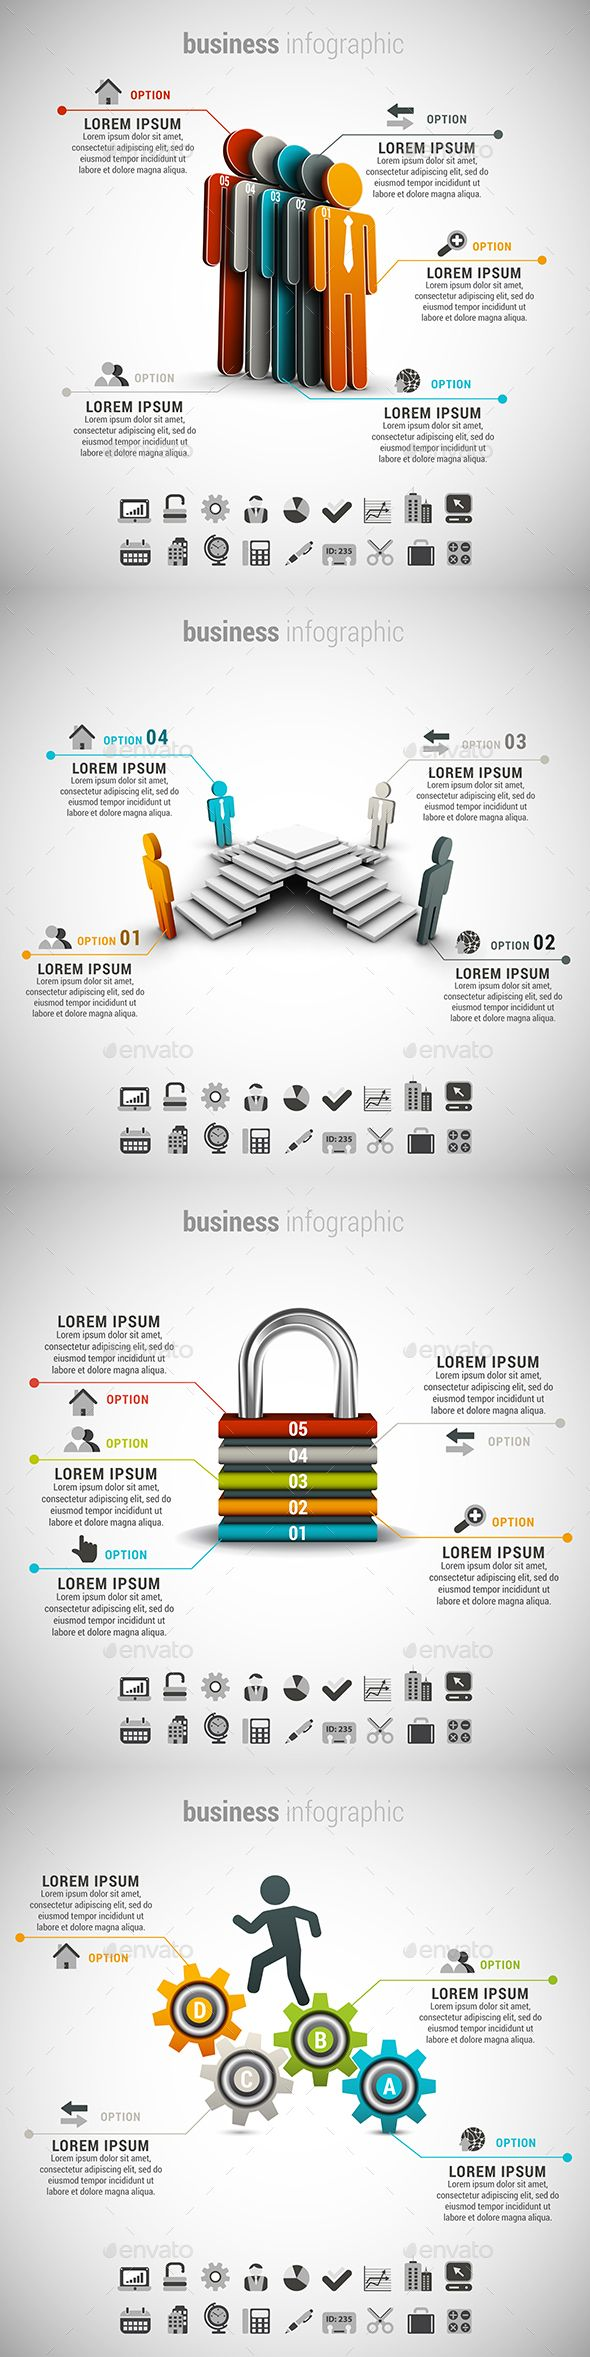 4 in 1 Business Infographics Template PSD, Vector EPS, AI Bundle. Download here: http://graphicriver.net/item/4-in-1-business-infographics-bundle/15099133?ref=ksioks